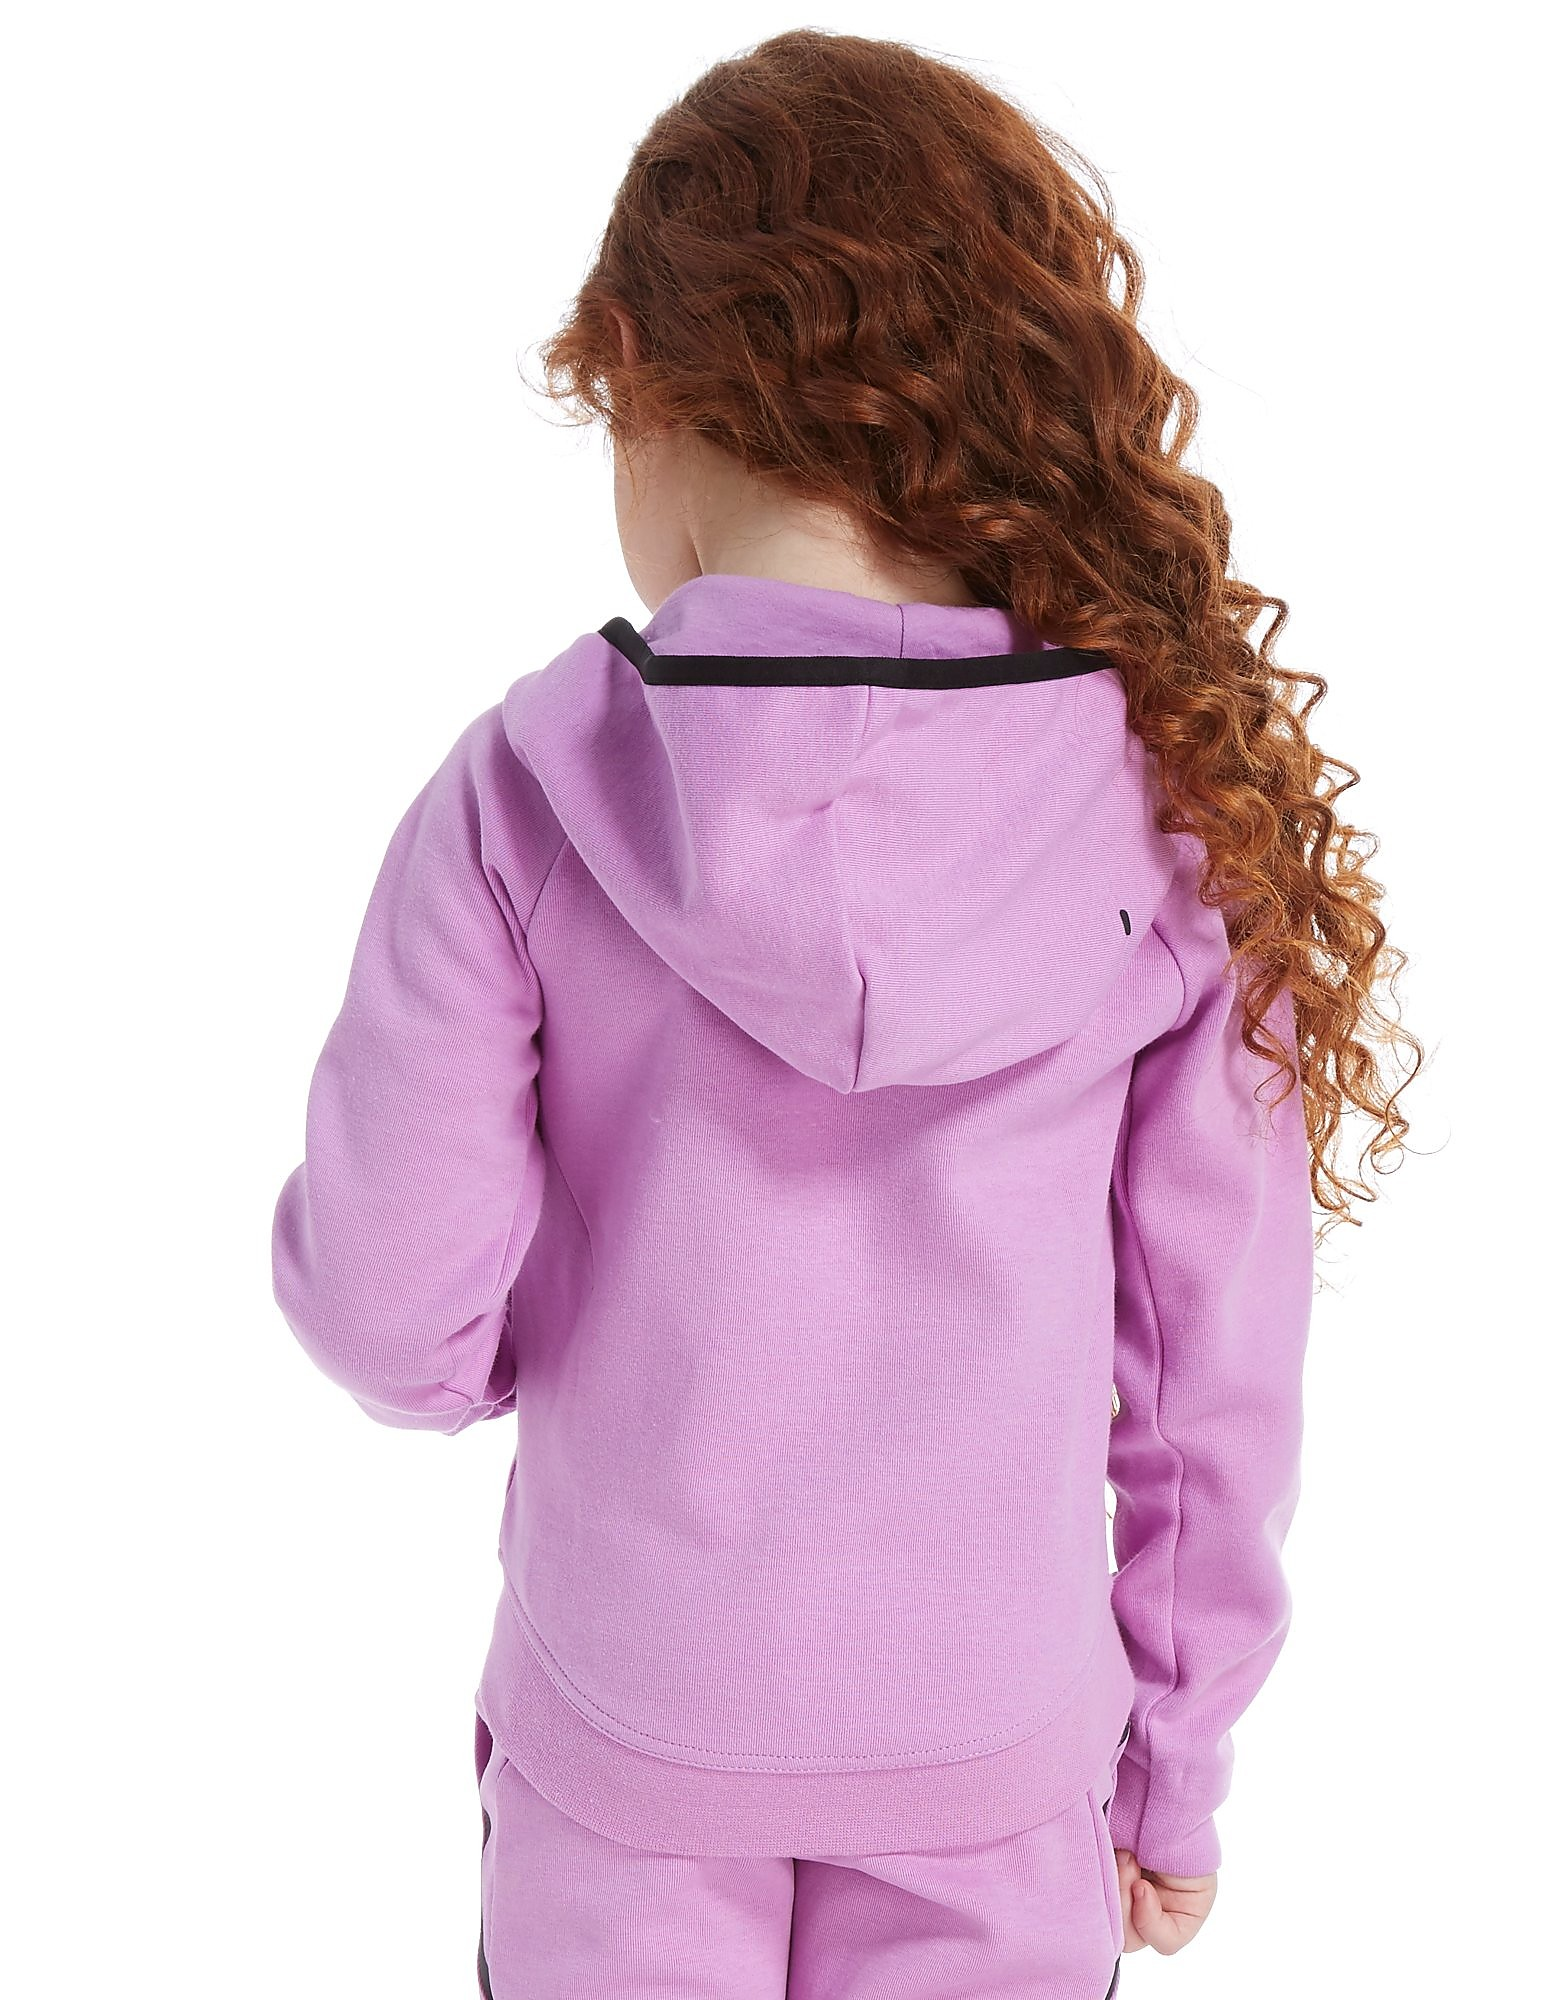 Nike Girls' Tech Full Zip Hoodie Children